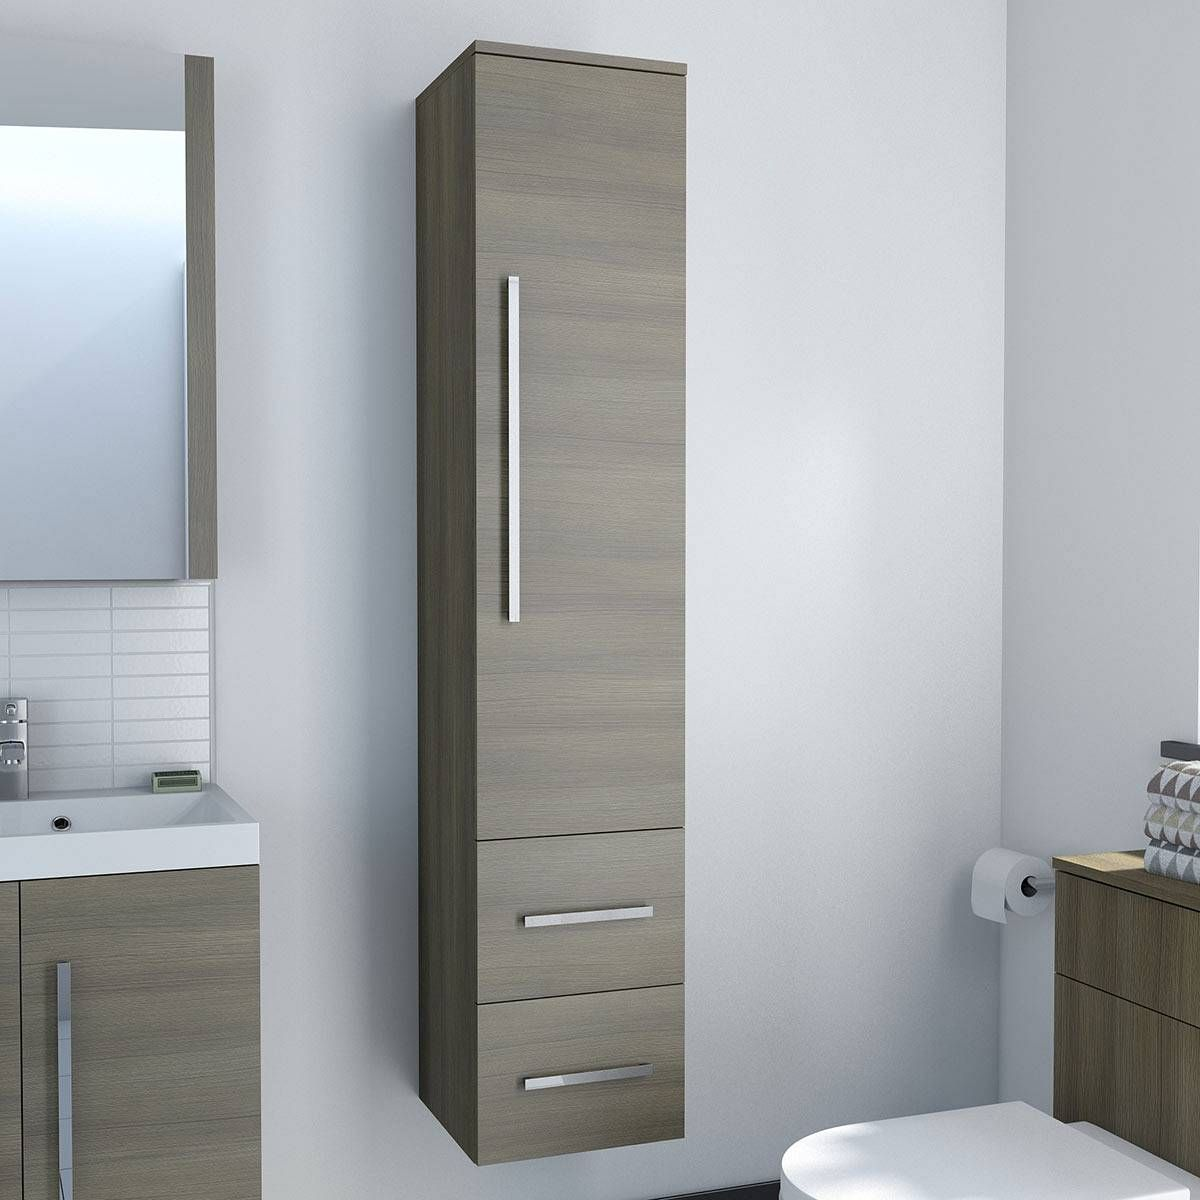 Drift Walnut Tall Cabinet Bathroom Tall Cabinet Thin Bathroom Cabinet Tall Bathroom Storage